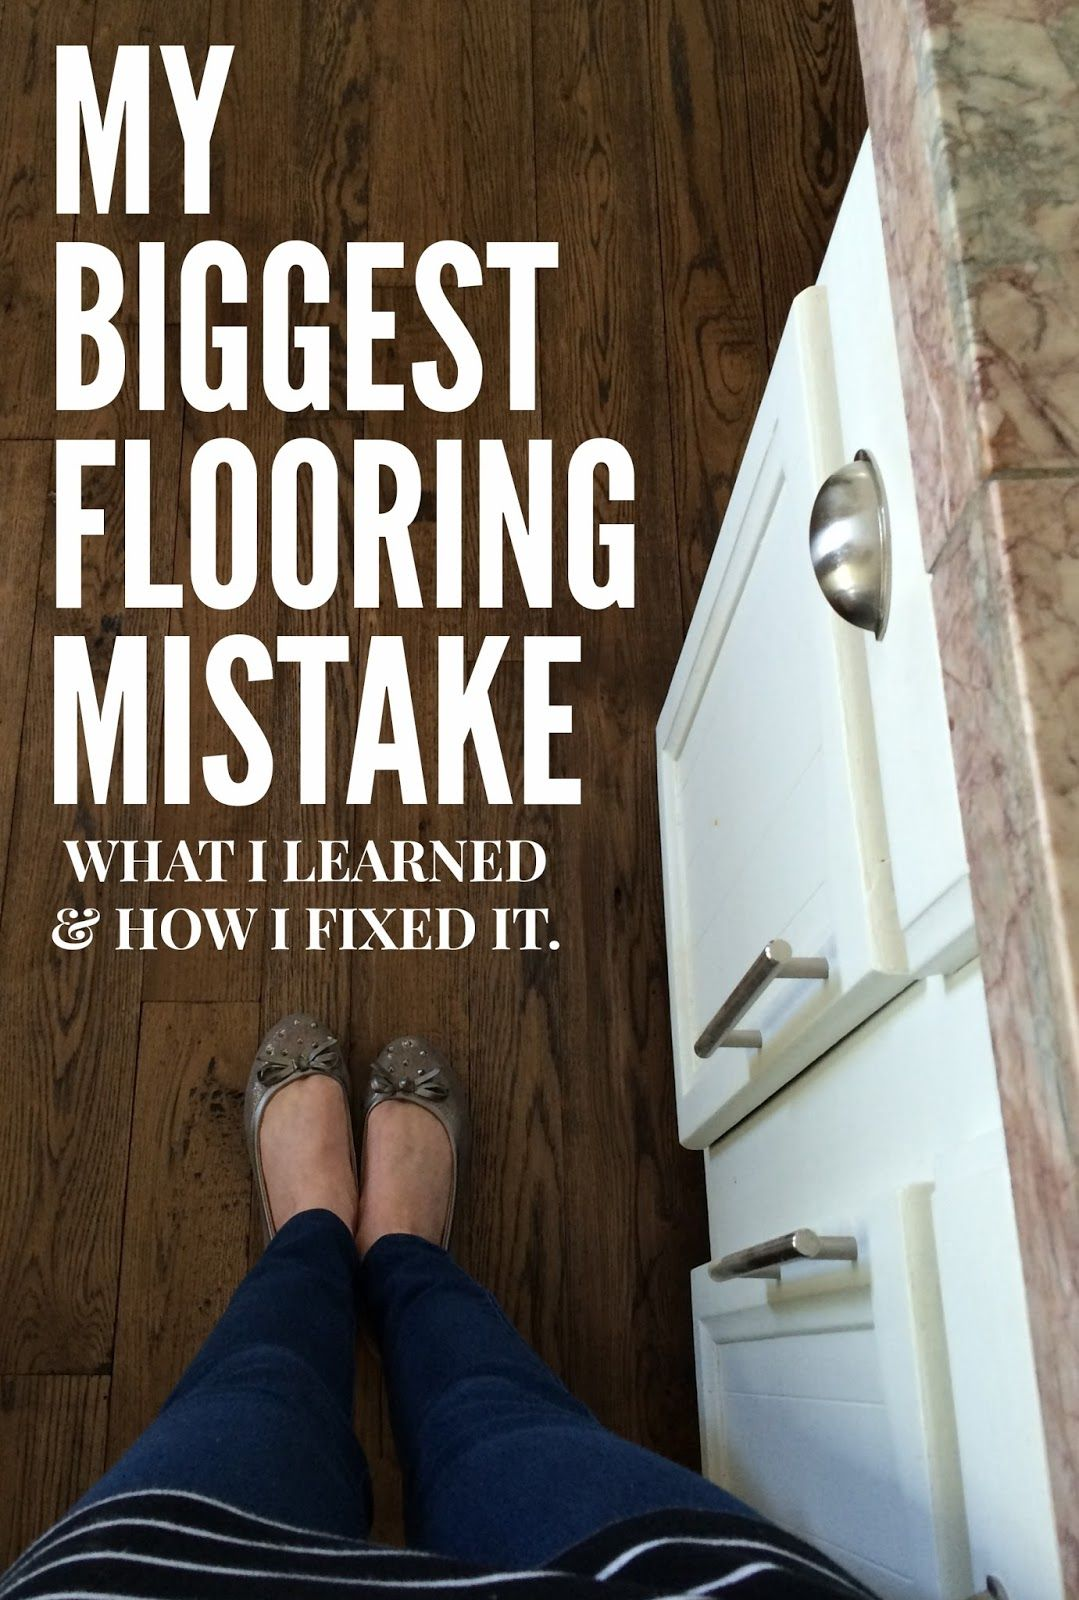 kitchen flooring types Our s House Makeover Part 5 My Biggest Flooring Mistake what I learned and